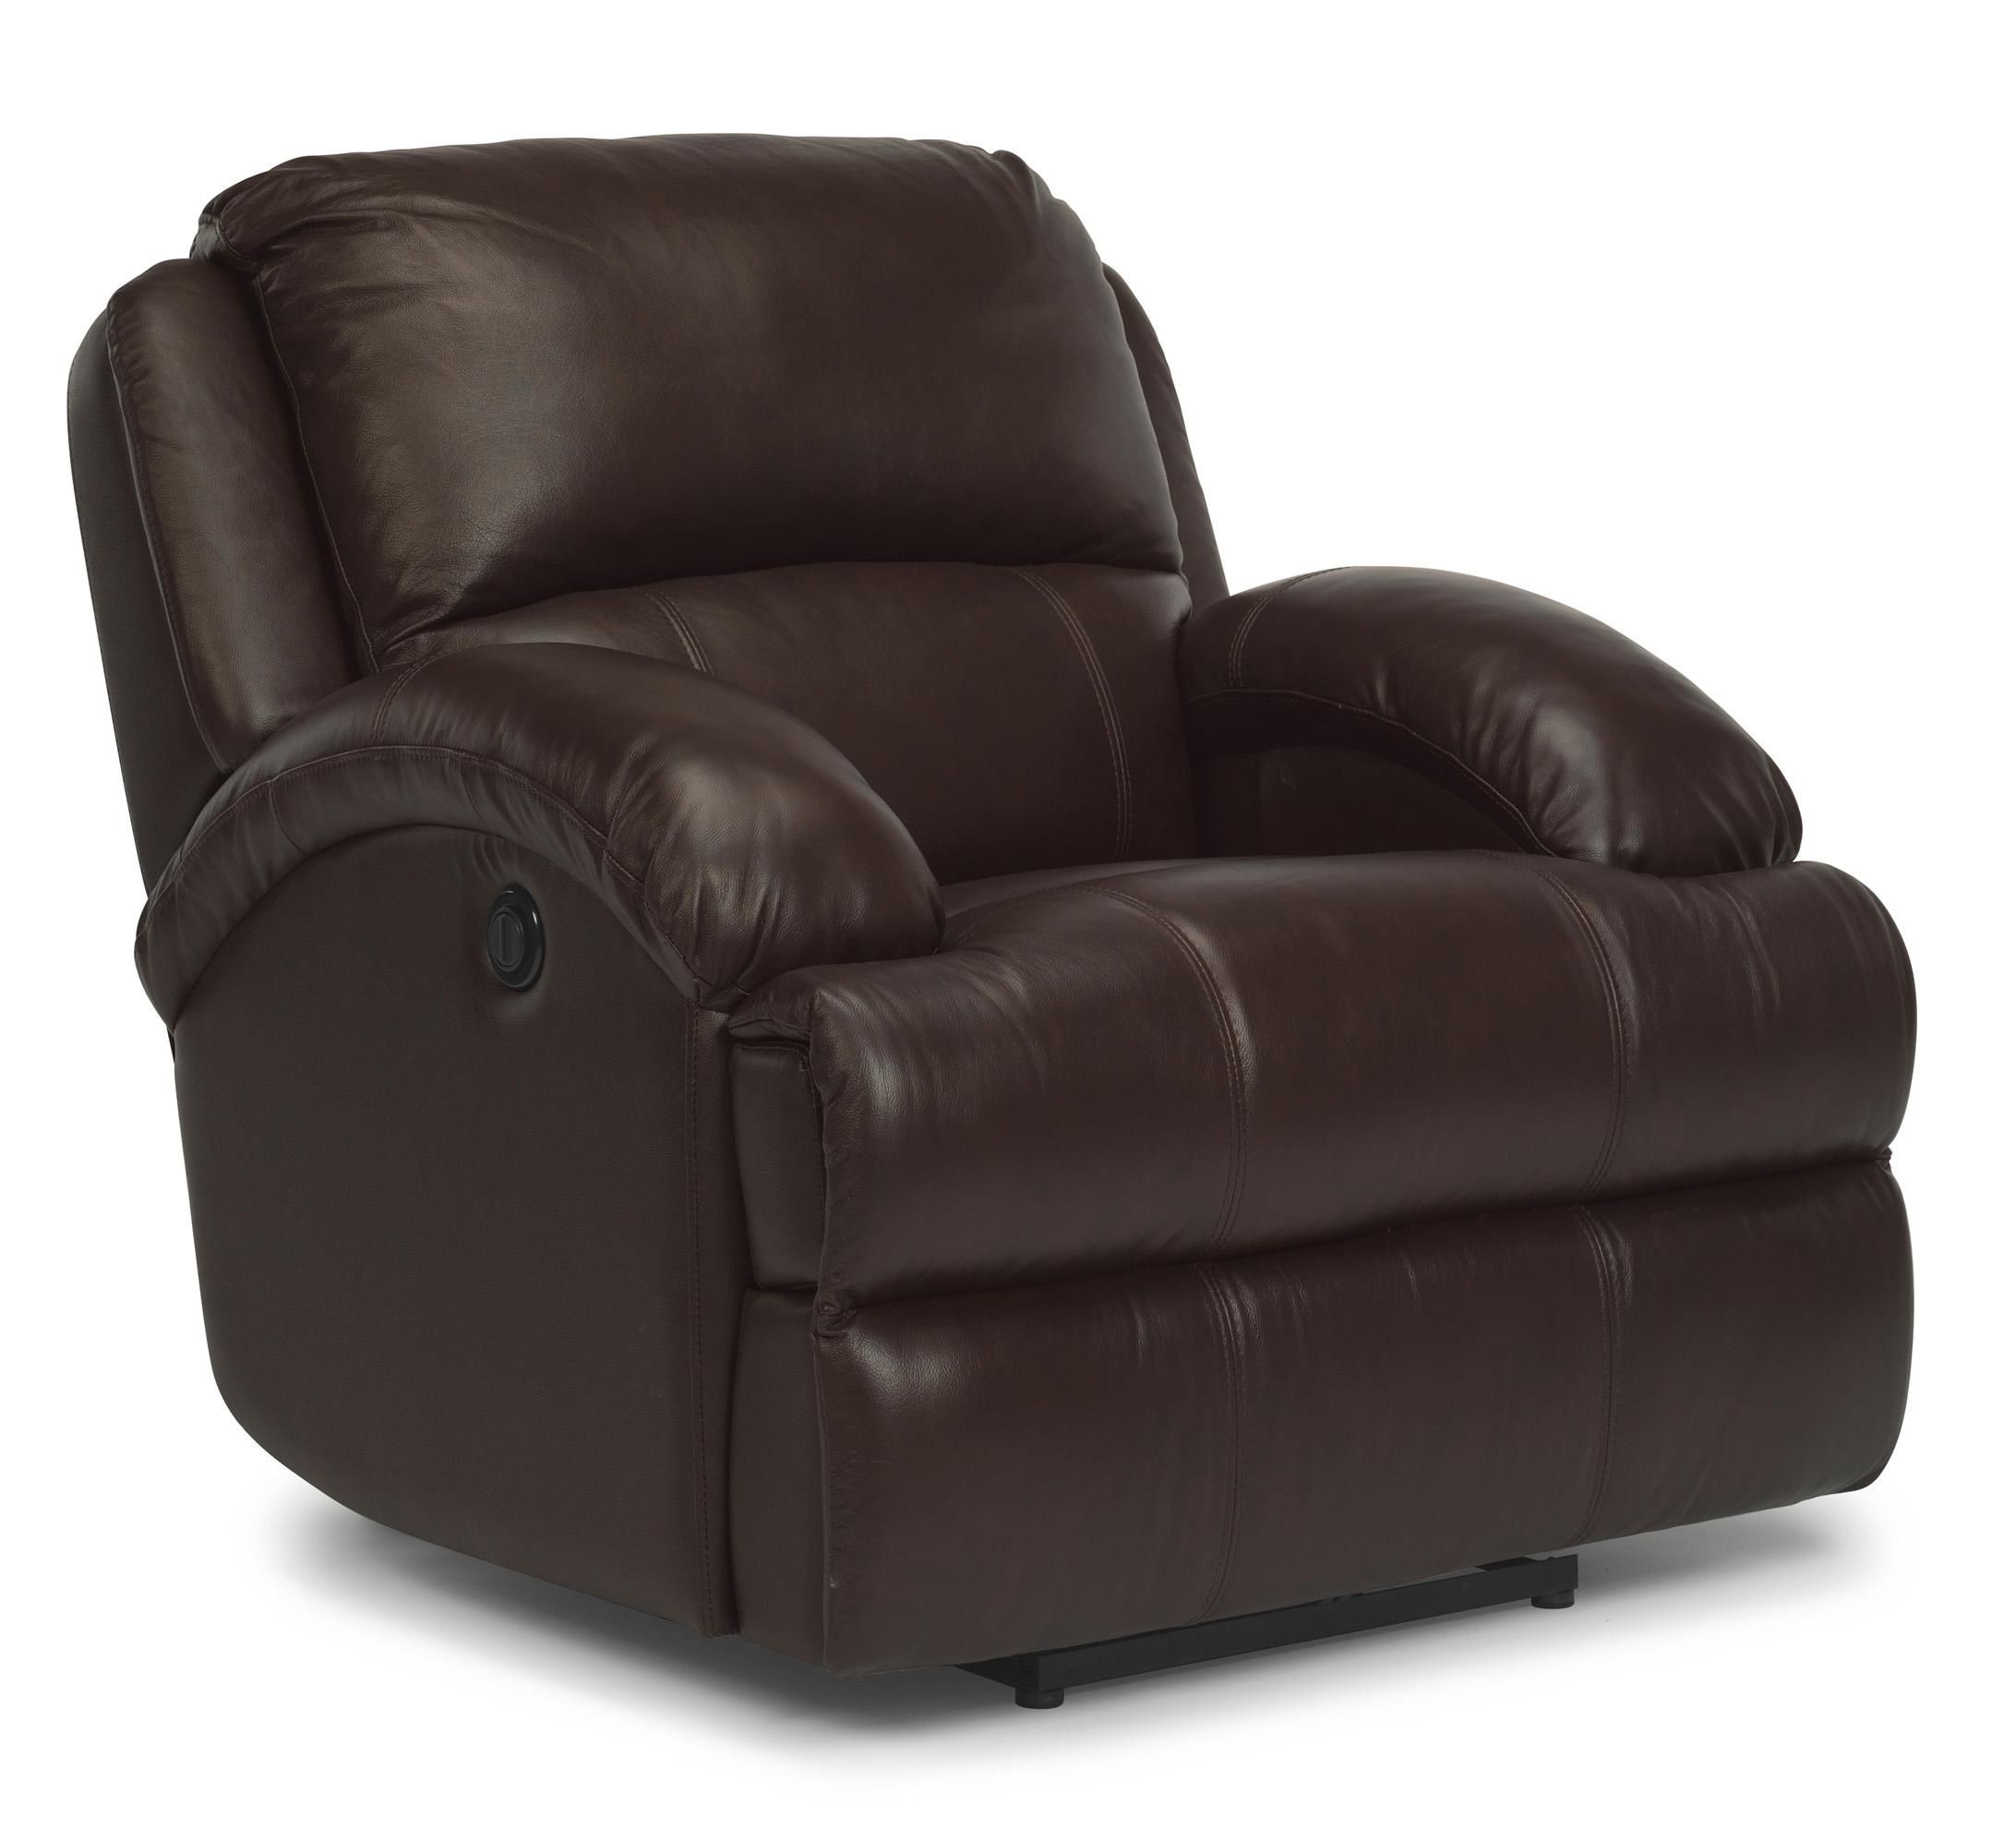 Flexsteel Latitudes - Fast Lane Power Recliner - Item Number: 1242-50P